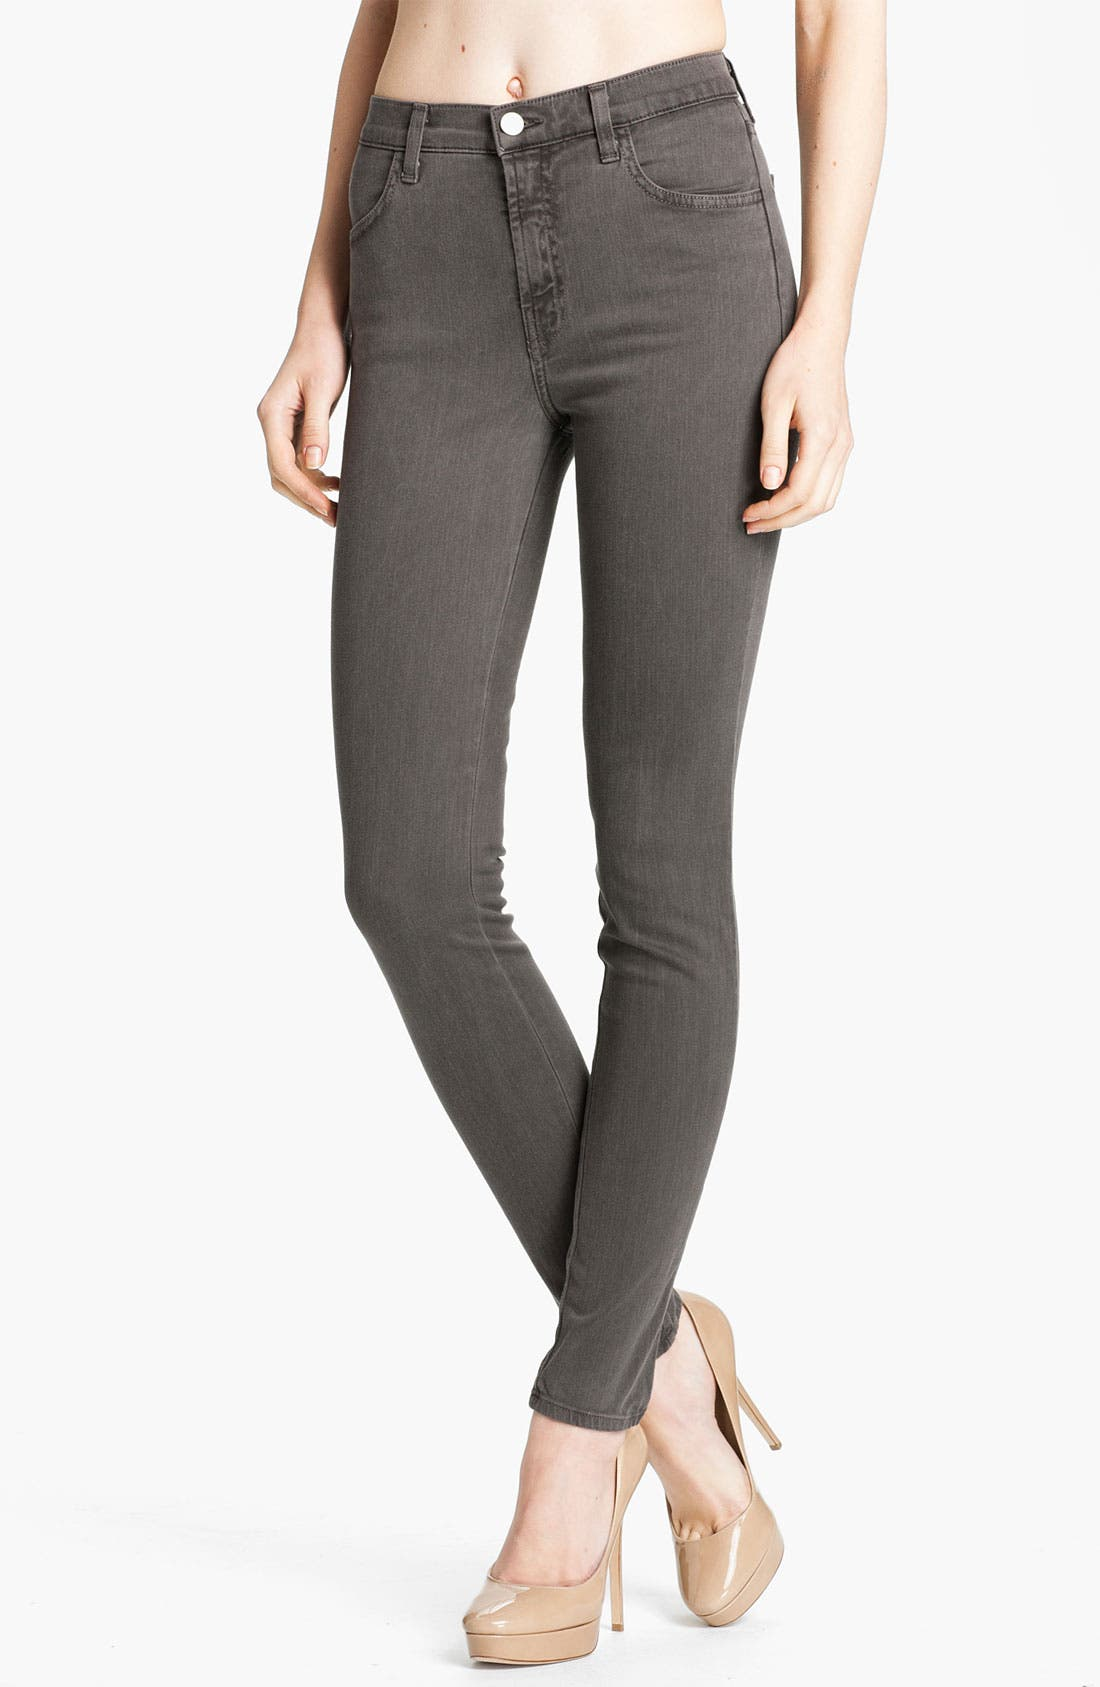 Alternate Image 1 Selected - J Brand 'Maria' High Rise Skinny Stretch Jeans (Vintage Fatigue)